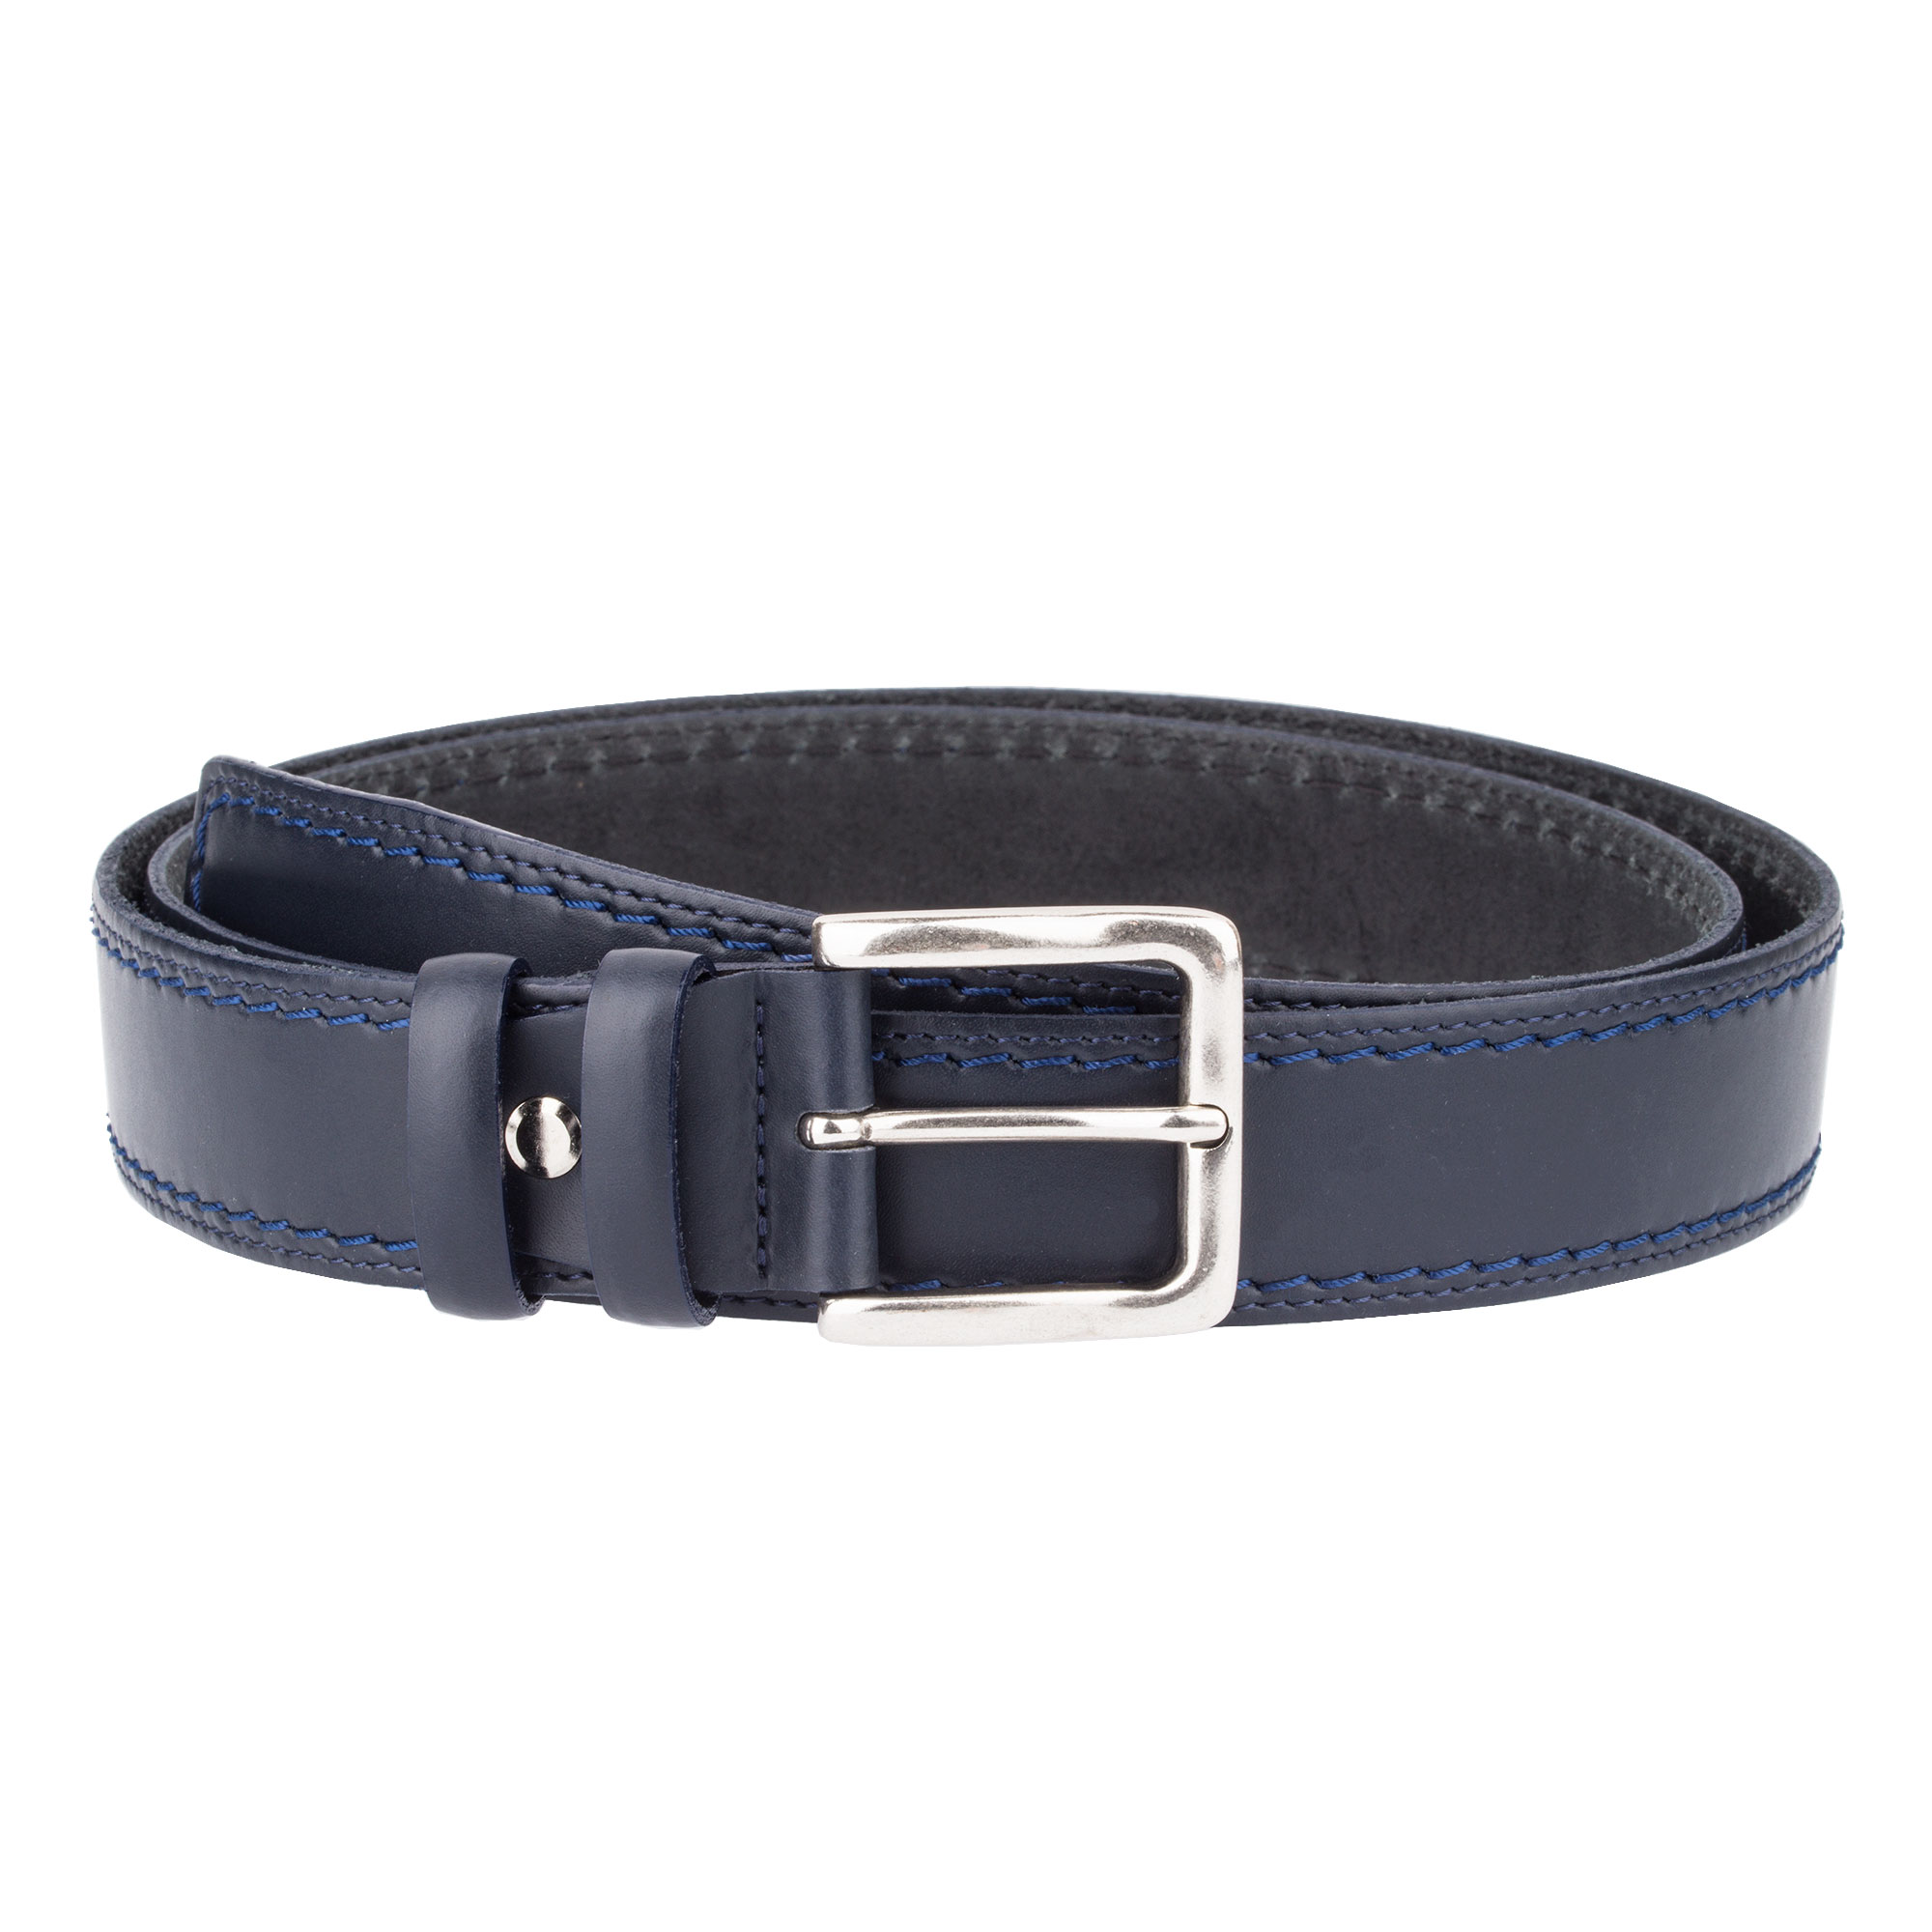 belt collections galleries capopelle